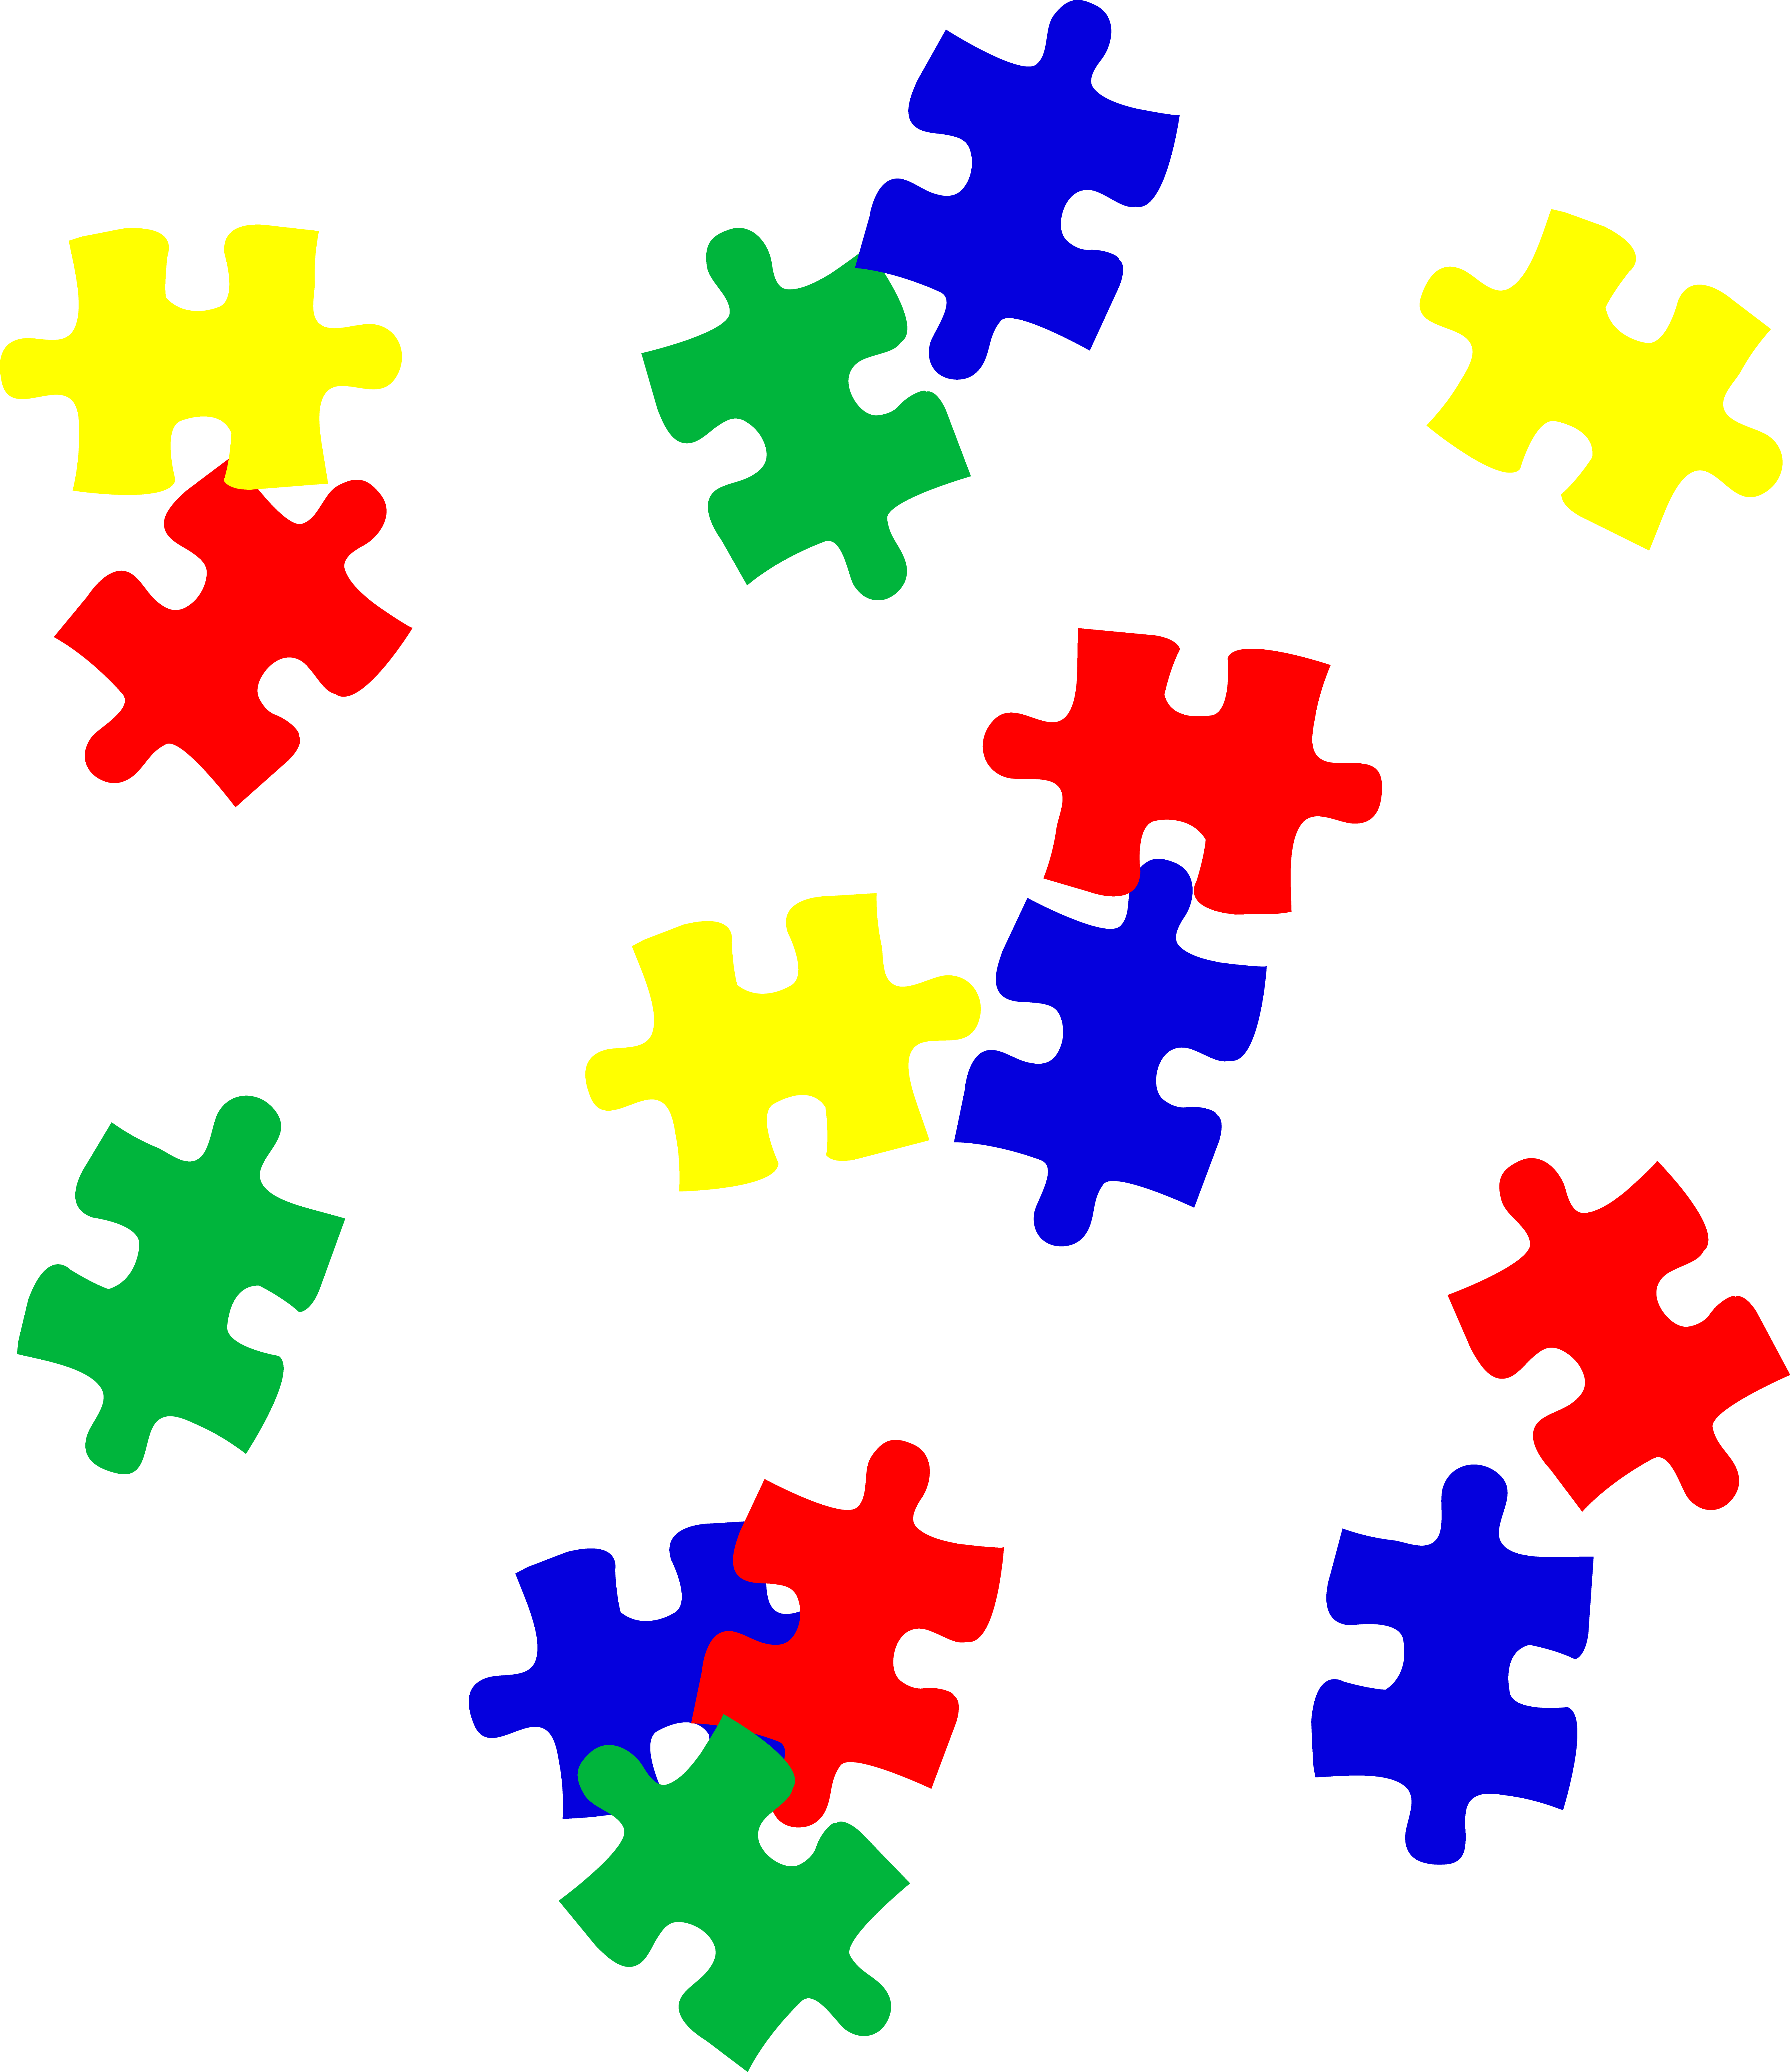 Gold clipart gold nugget. Fun games autism puzzle